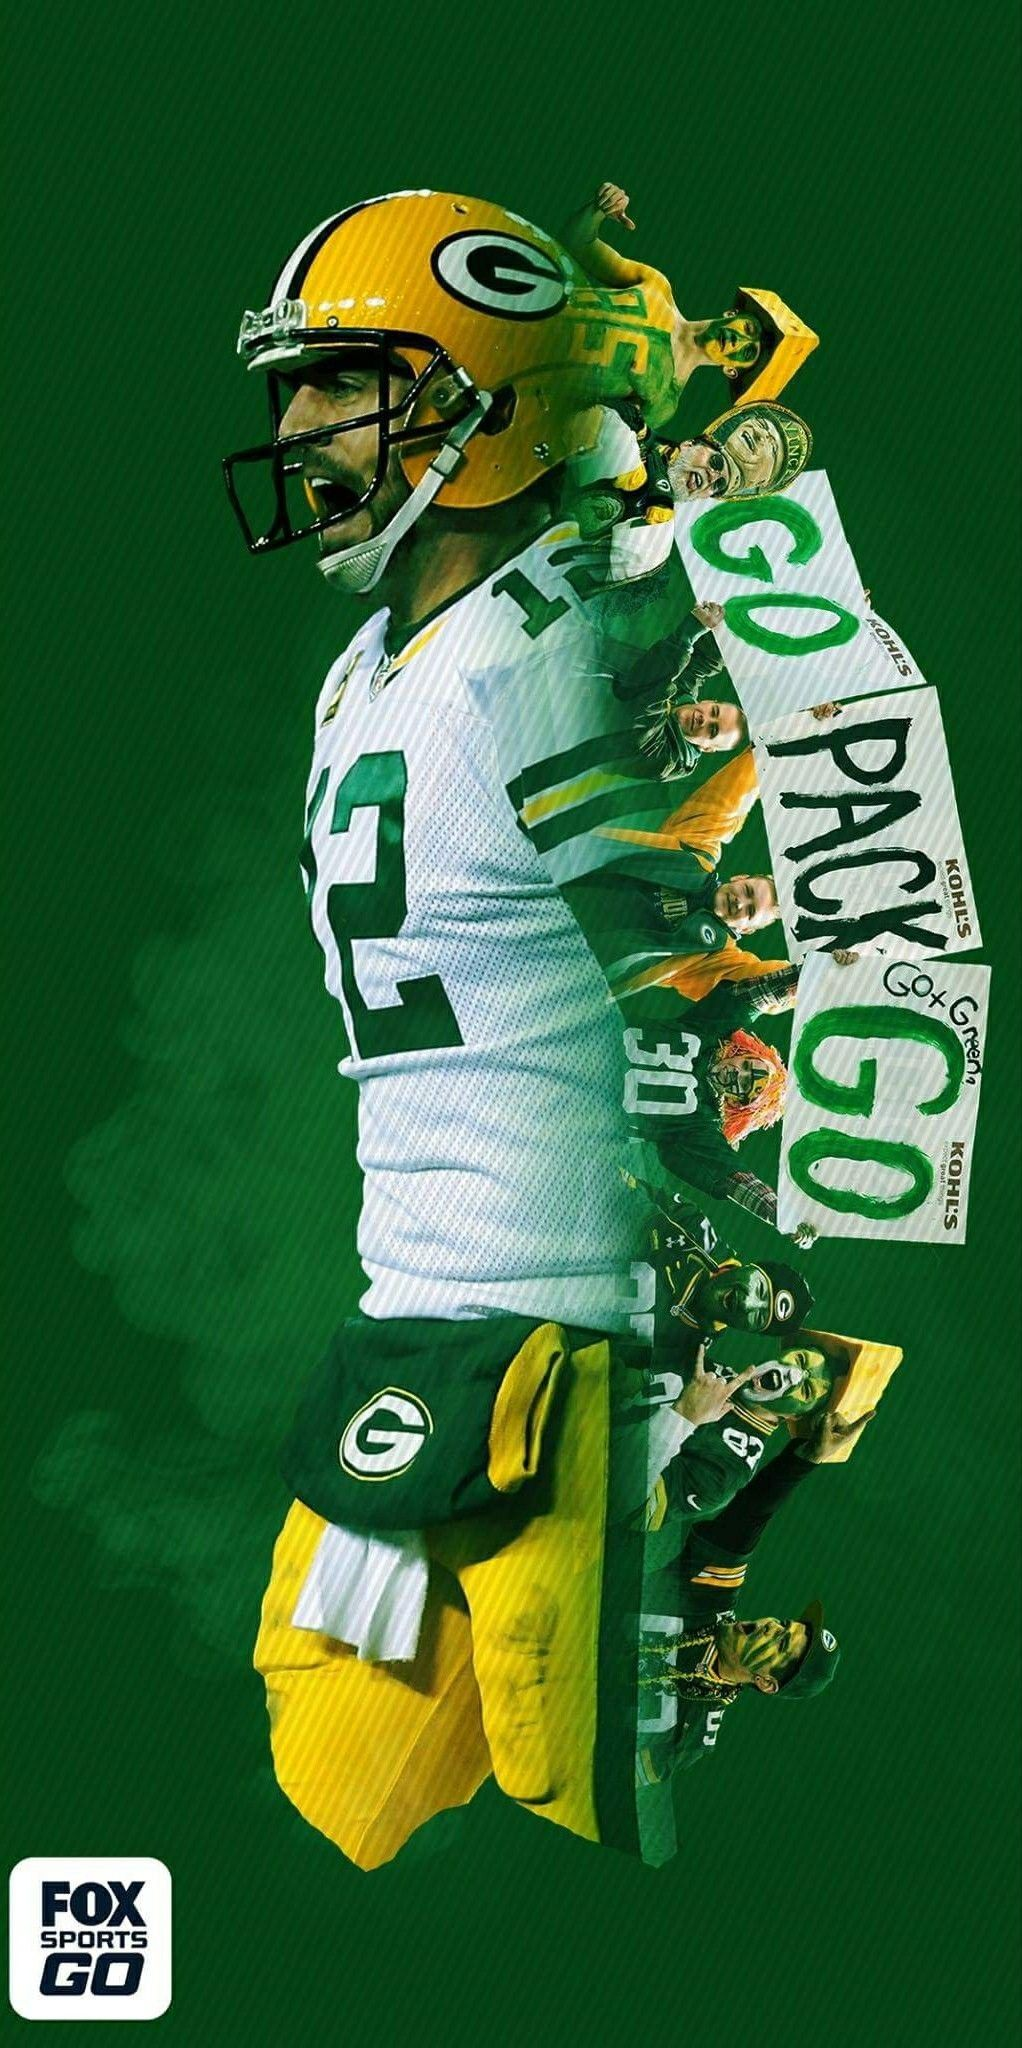 Pin By Marvio Magalhaes De Souza On Artes Esportes In 2020 Green Bay Packers Wallpaper Green Bay Packers Green Bay Packers Jerseys